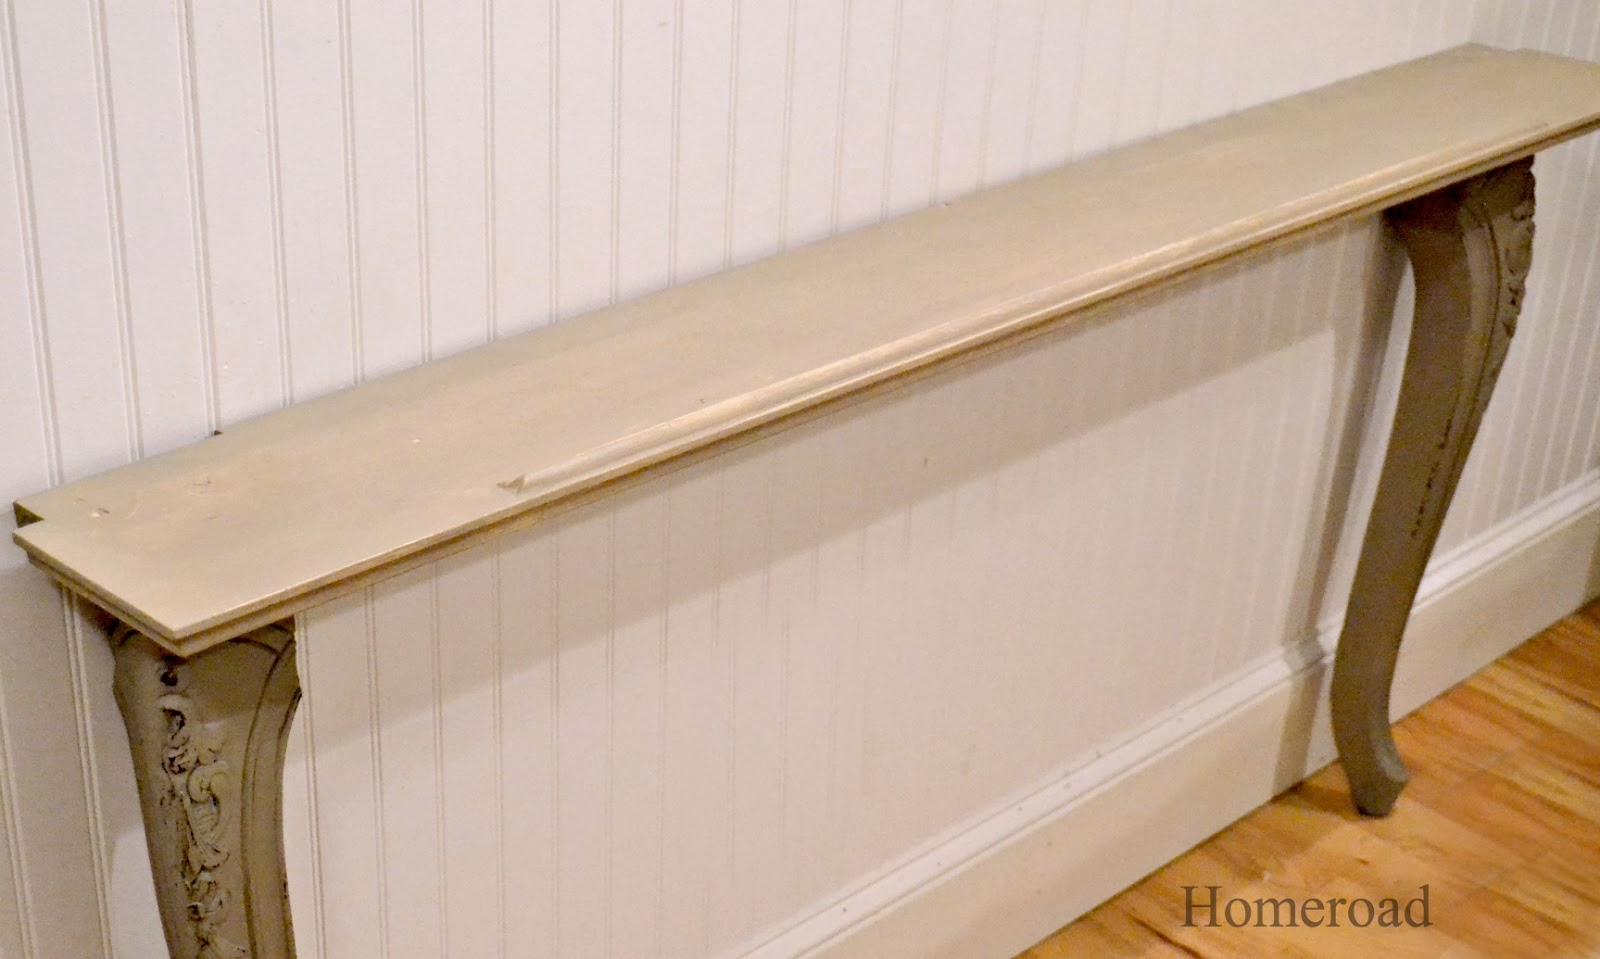 Homeroad Diy Narrow Wall Or Sofa Table